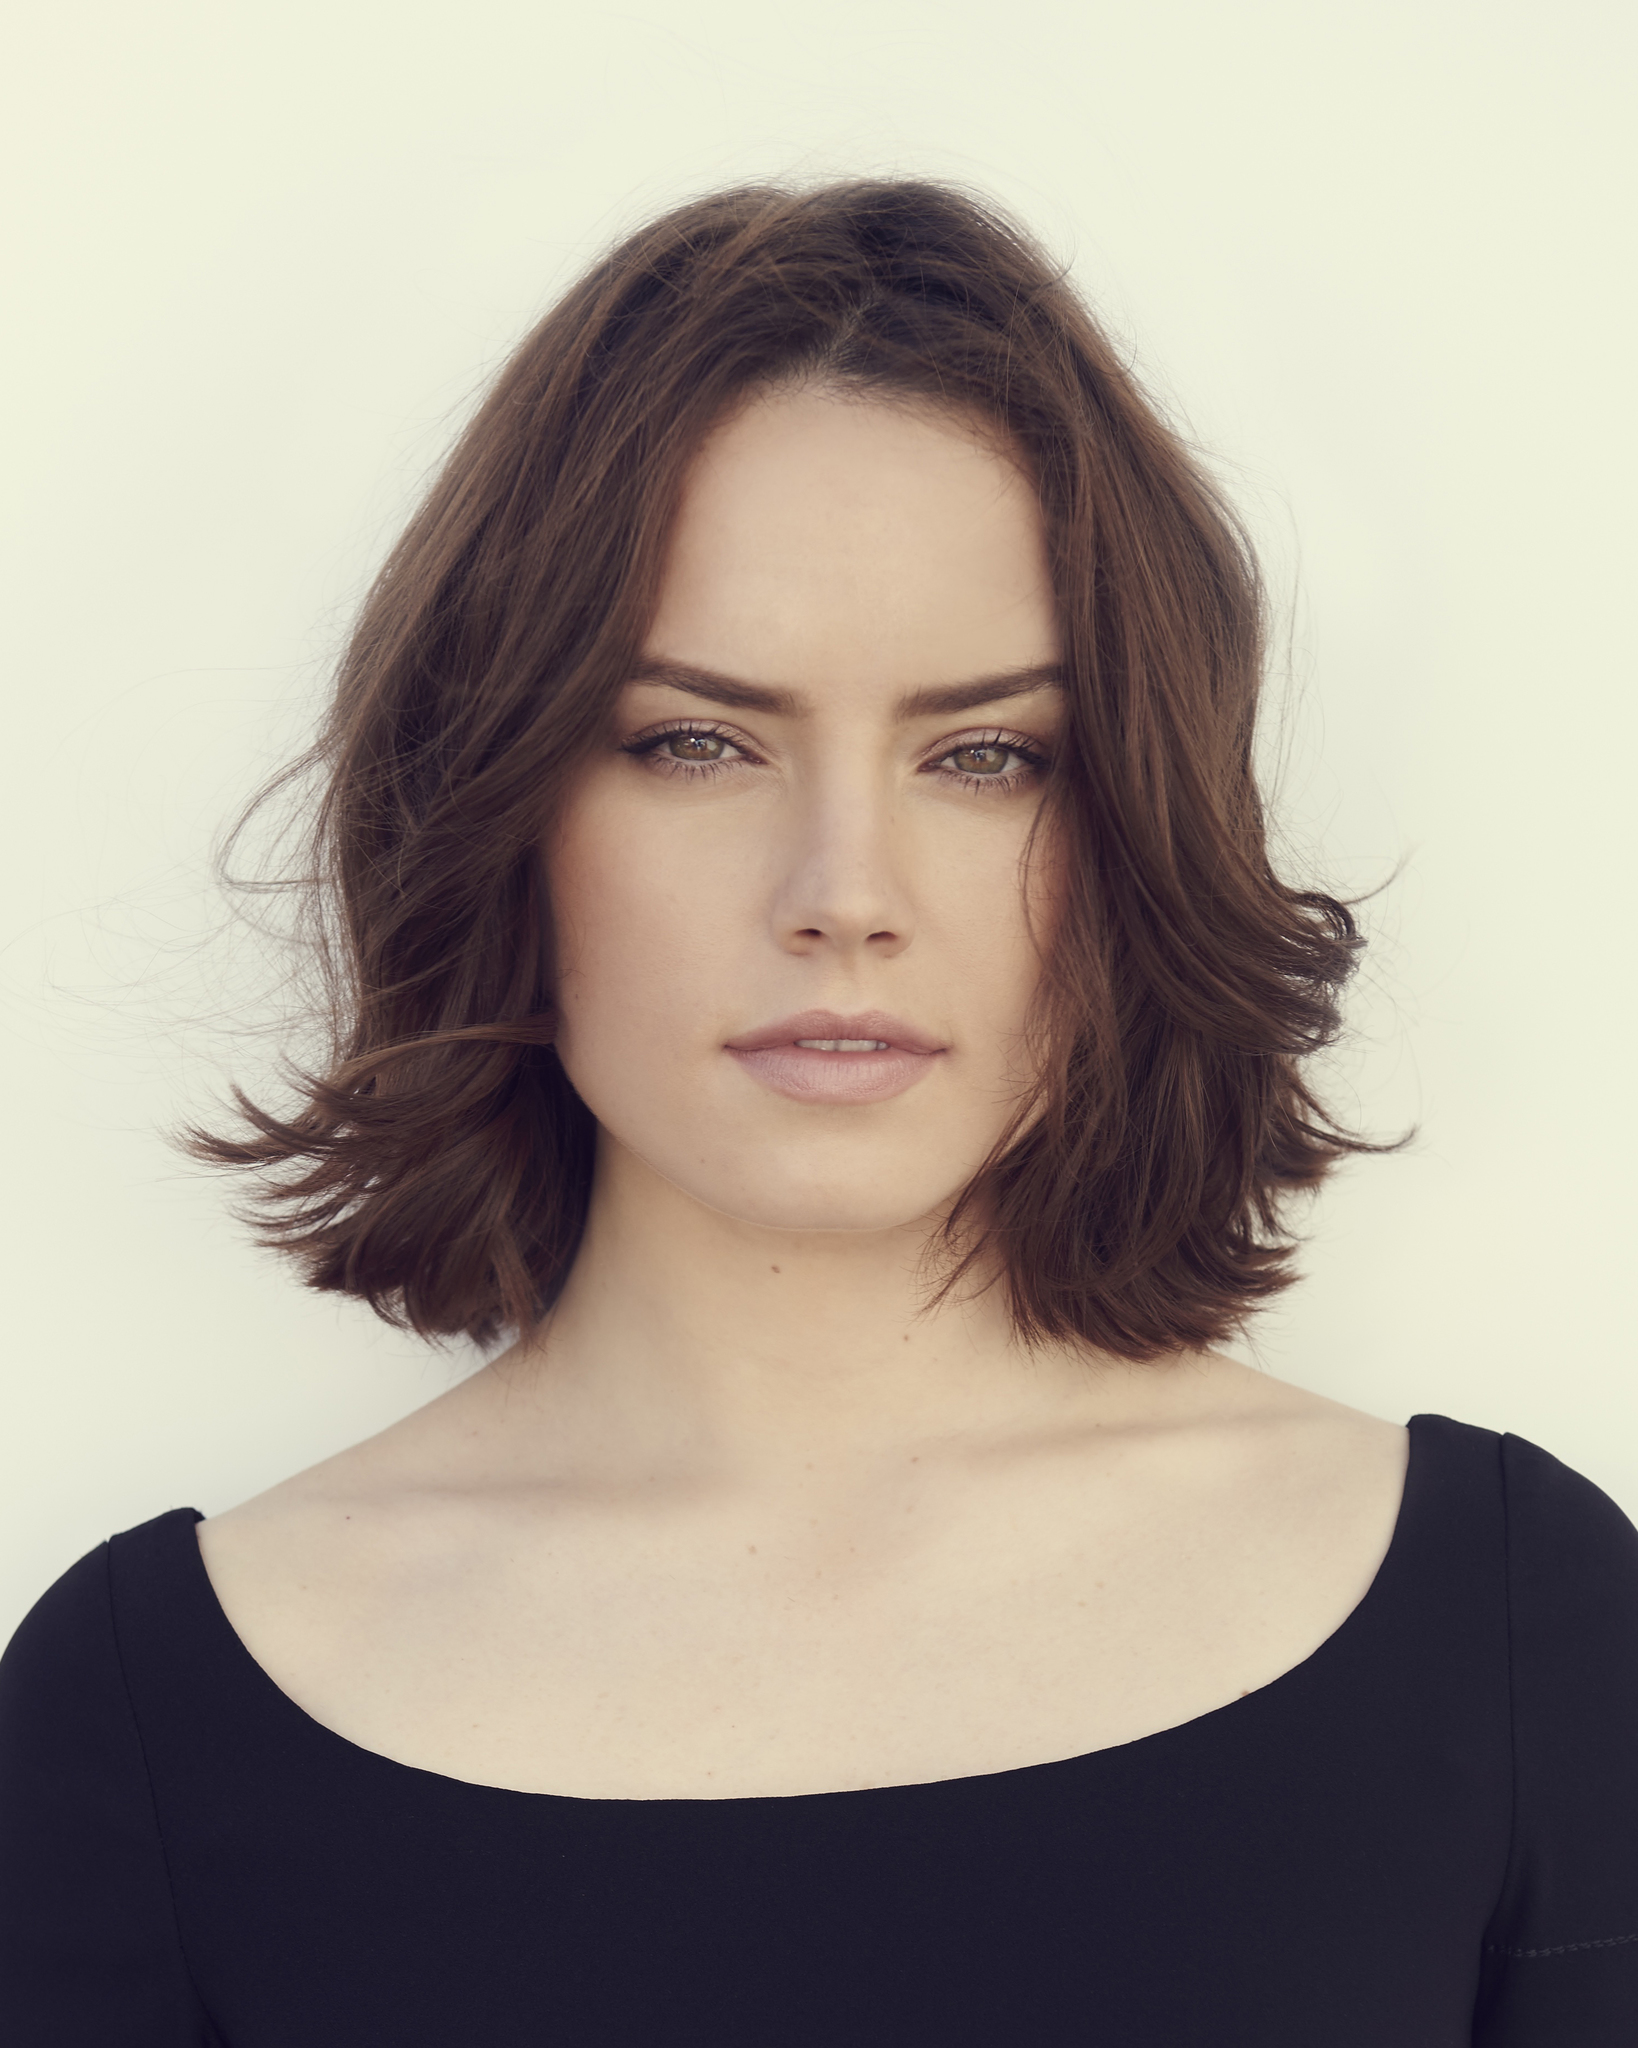 Photos Daisy Ridley nudes (94 photo), Selfie